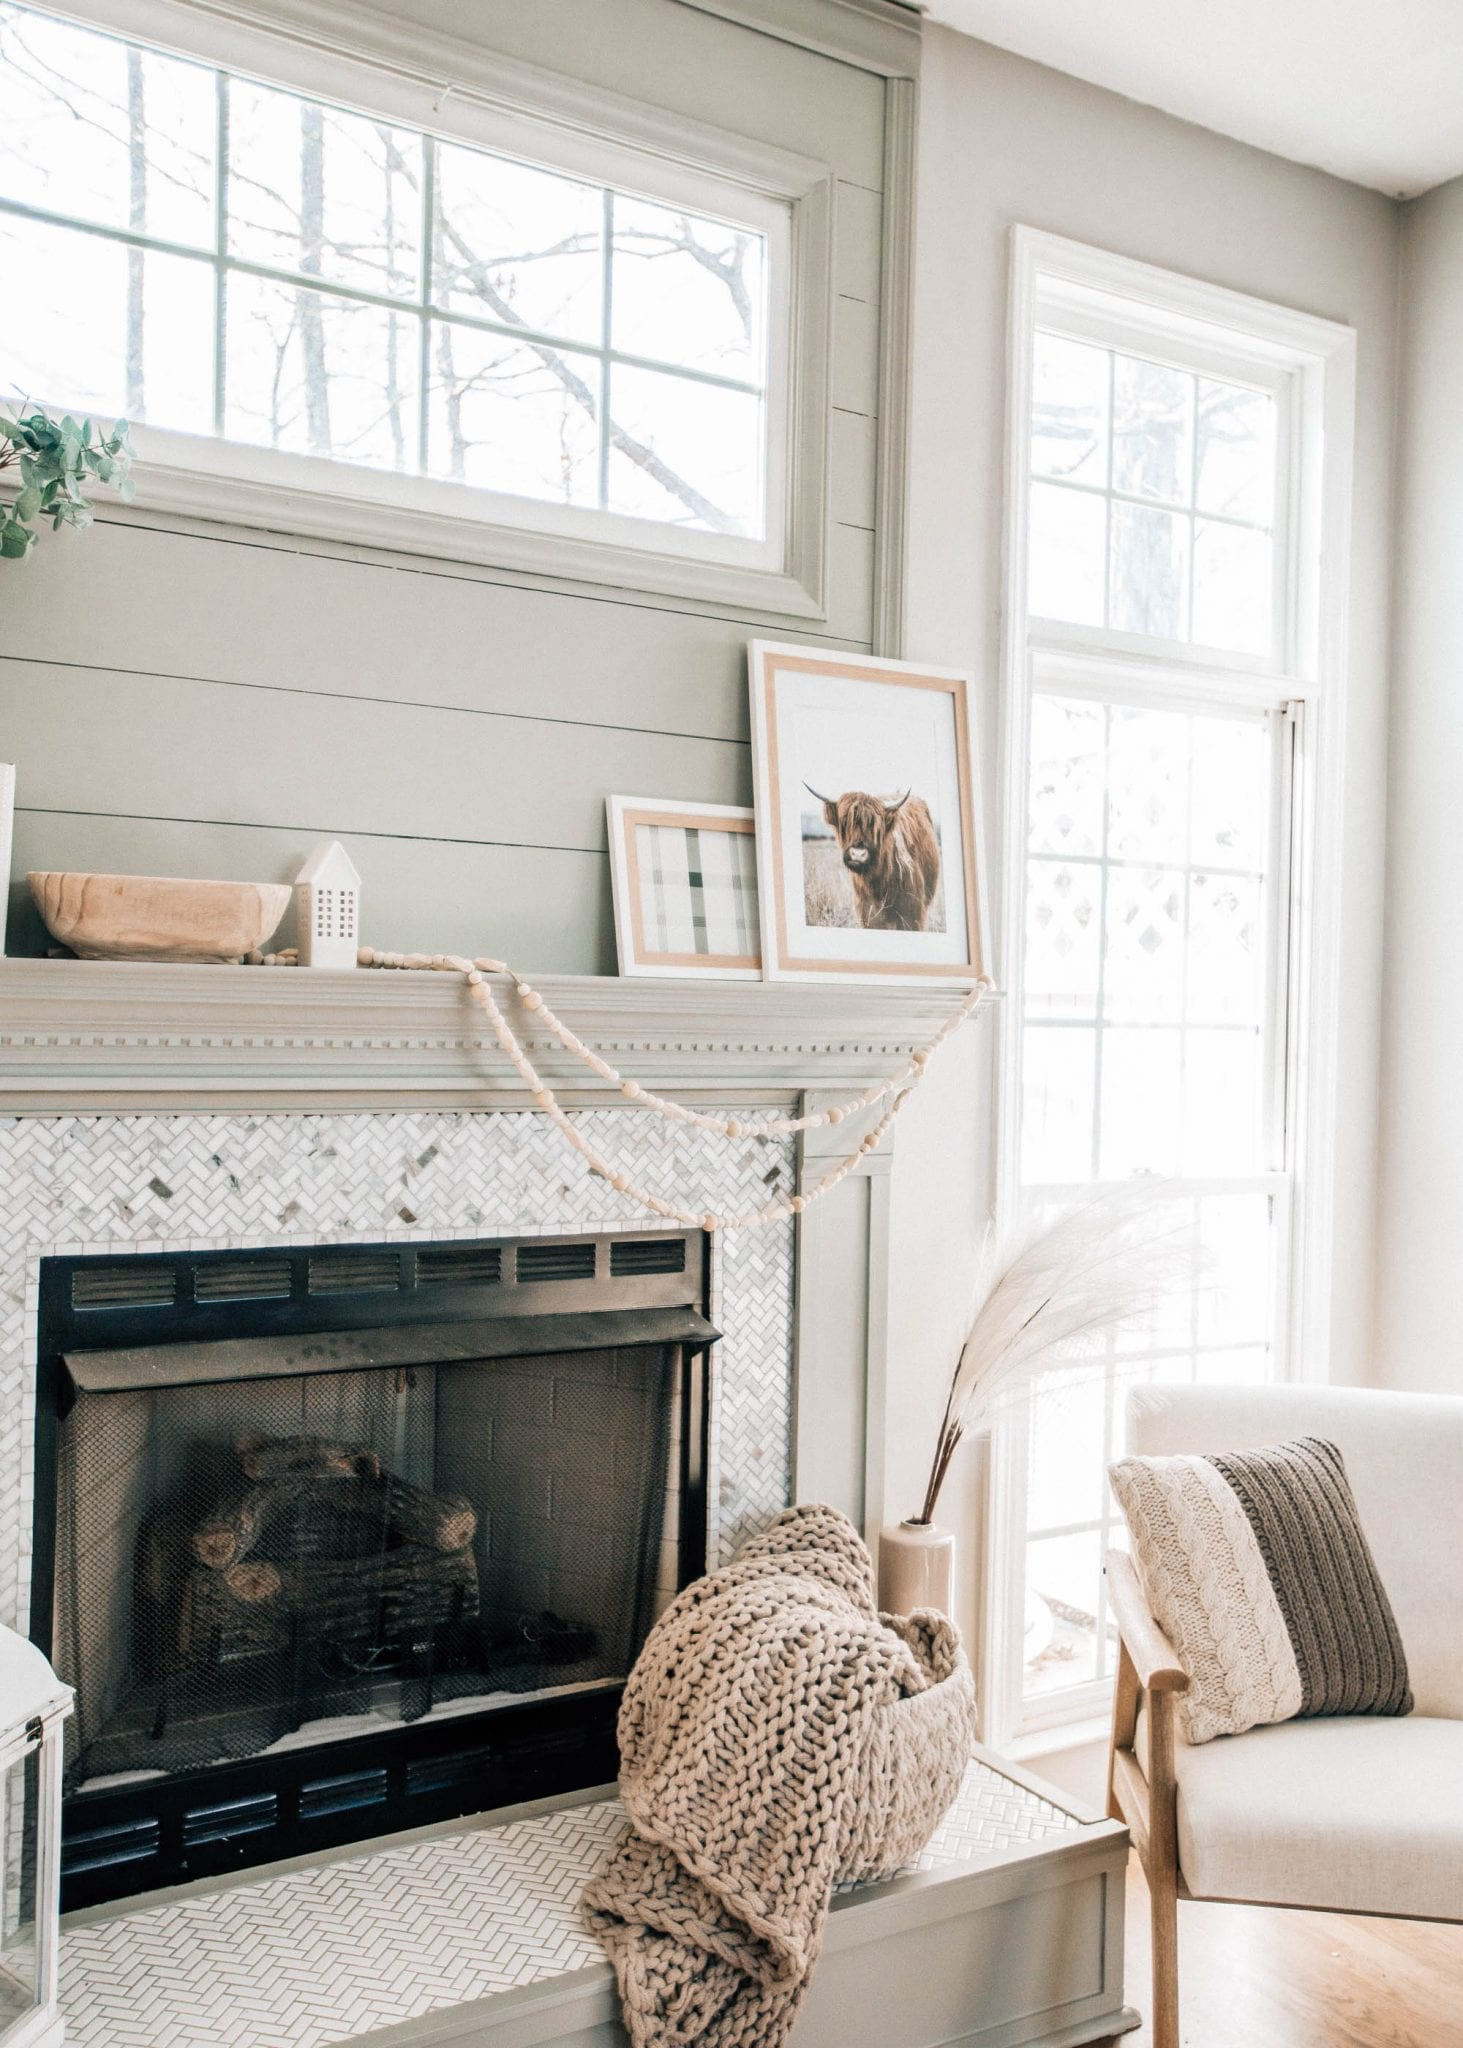 Refreshing Our Fireplace & Mantle